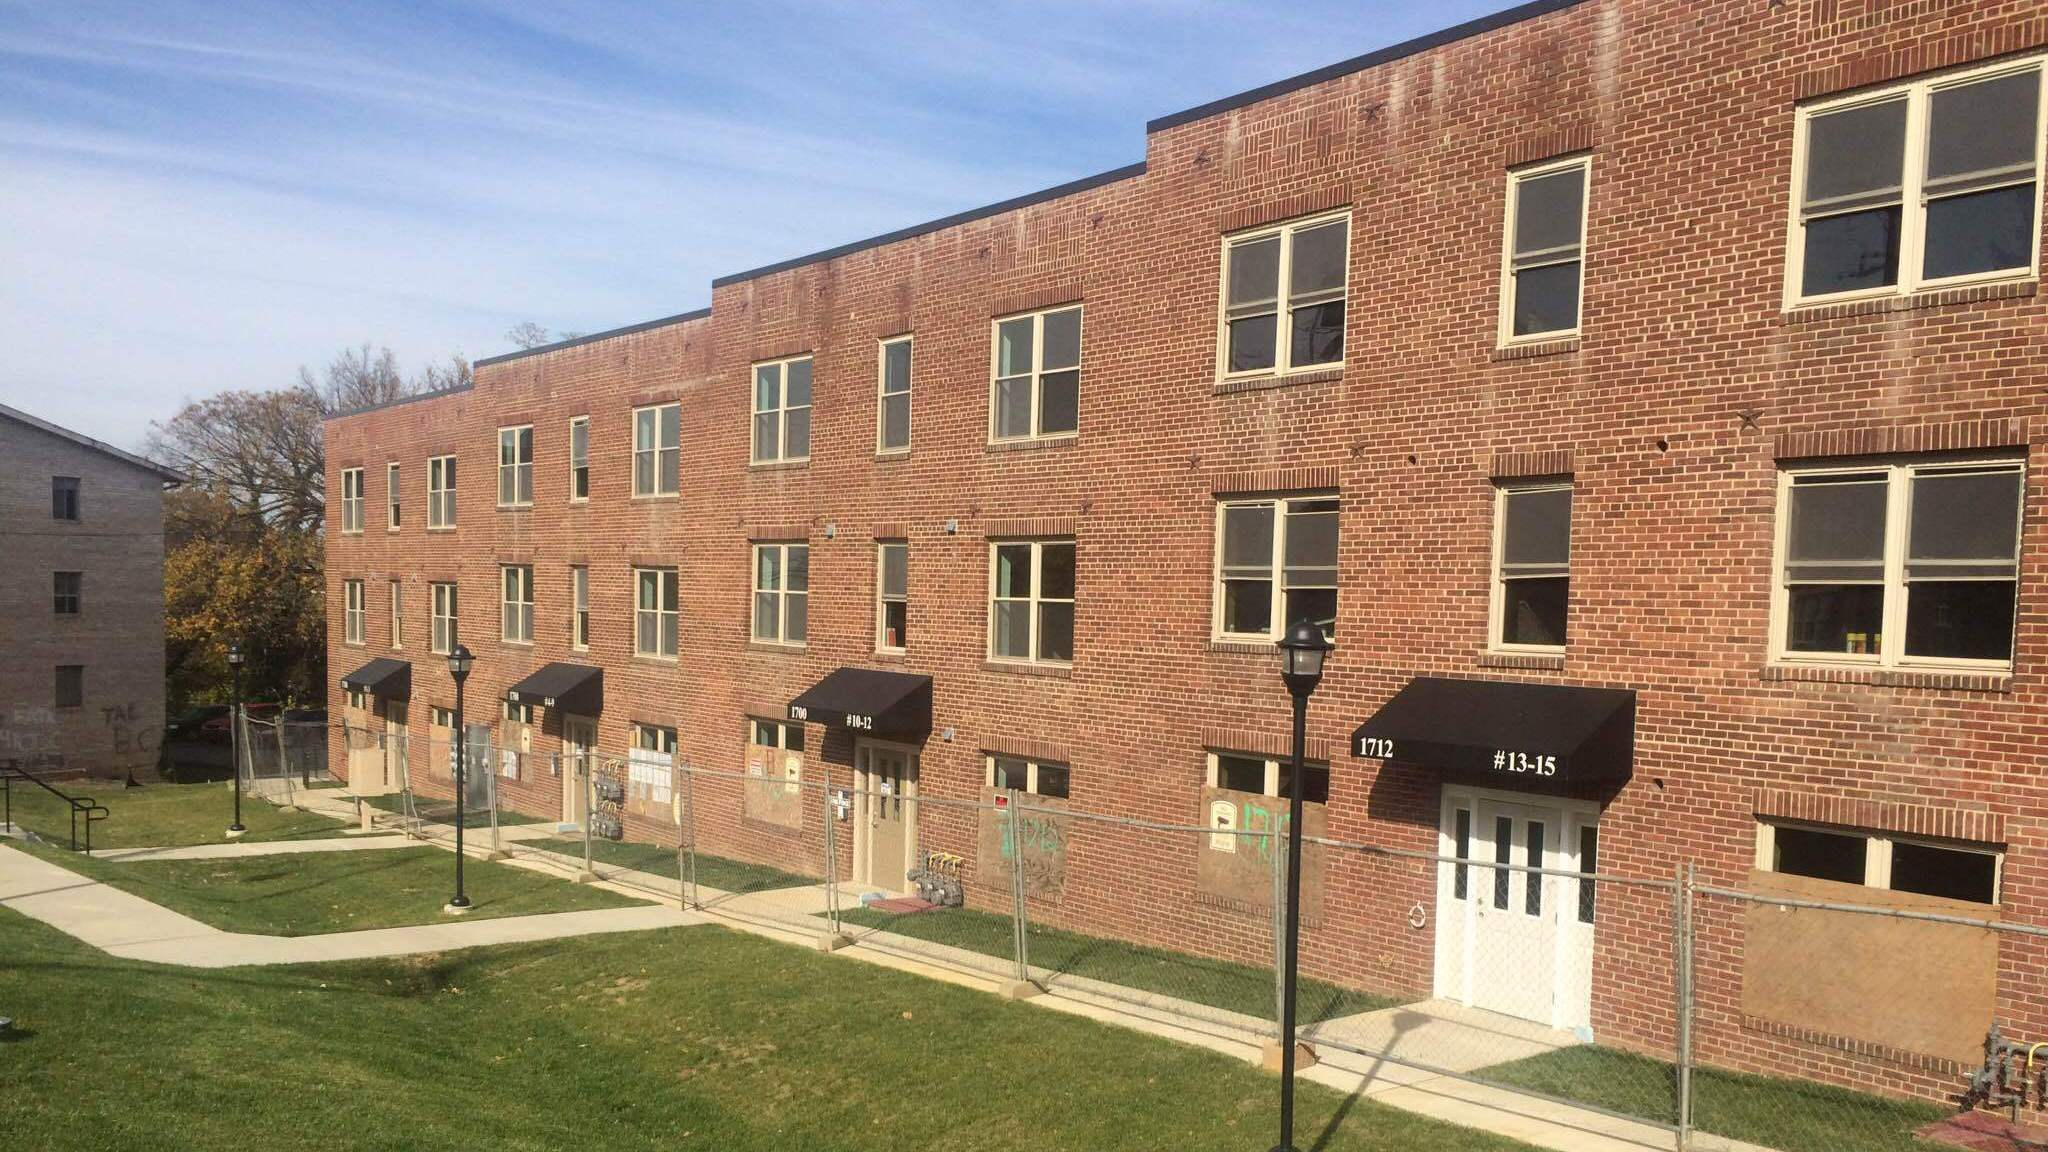 Bureaucratic hoops make d c affordable housing units hard Afordable house